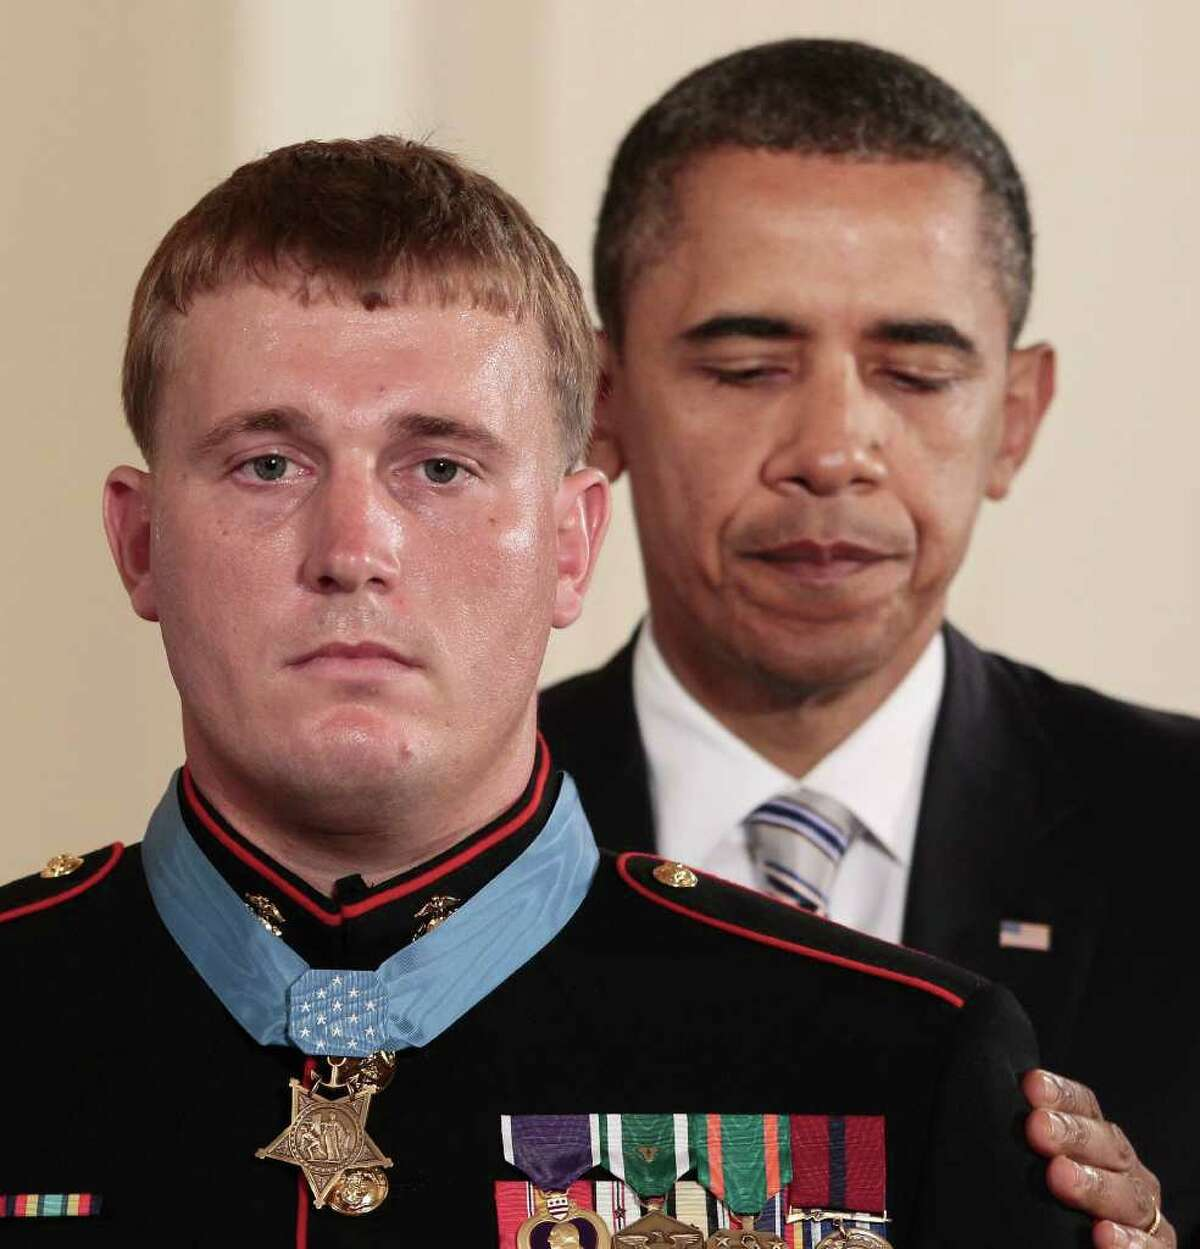 FILE - In this Sept. 15, 2011 file photo, President Barack Obama awards the Medal of Honor to former Marine Corps Cpl. Dakota Meyer, 23, from Greensburg, Ky., during a ceremony in the East Room of the White House in Washington. Meyer is suing defense contractor BAE Systems OASYS Inc., claiming that a manager at the company ridiculed his Medal of Honor, called him mentally unstable and suggested he had a drinking problem, thereby costing him a job.